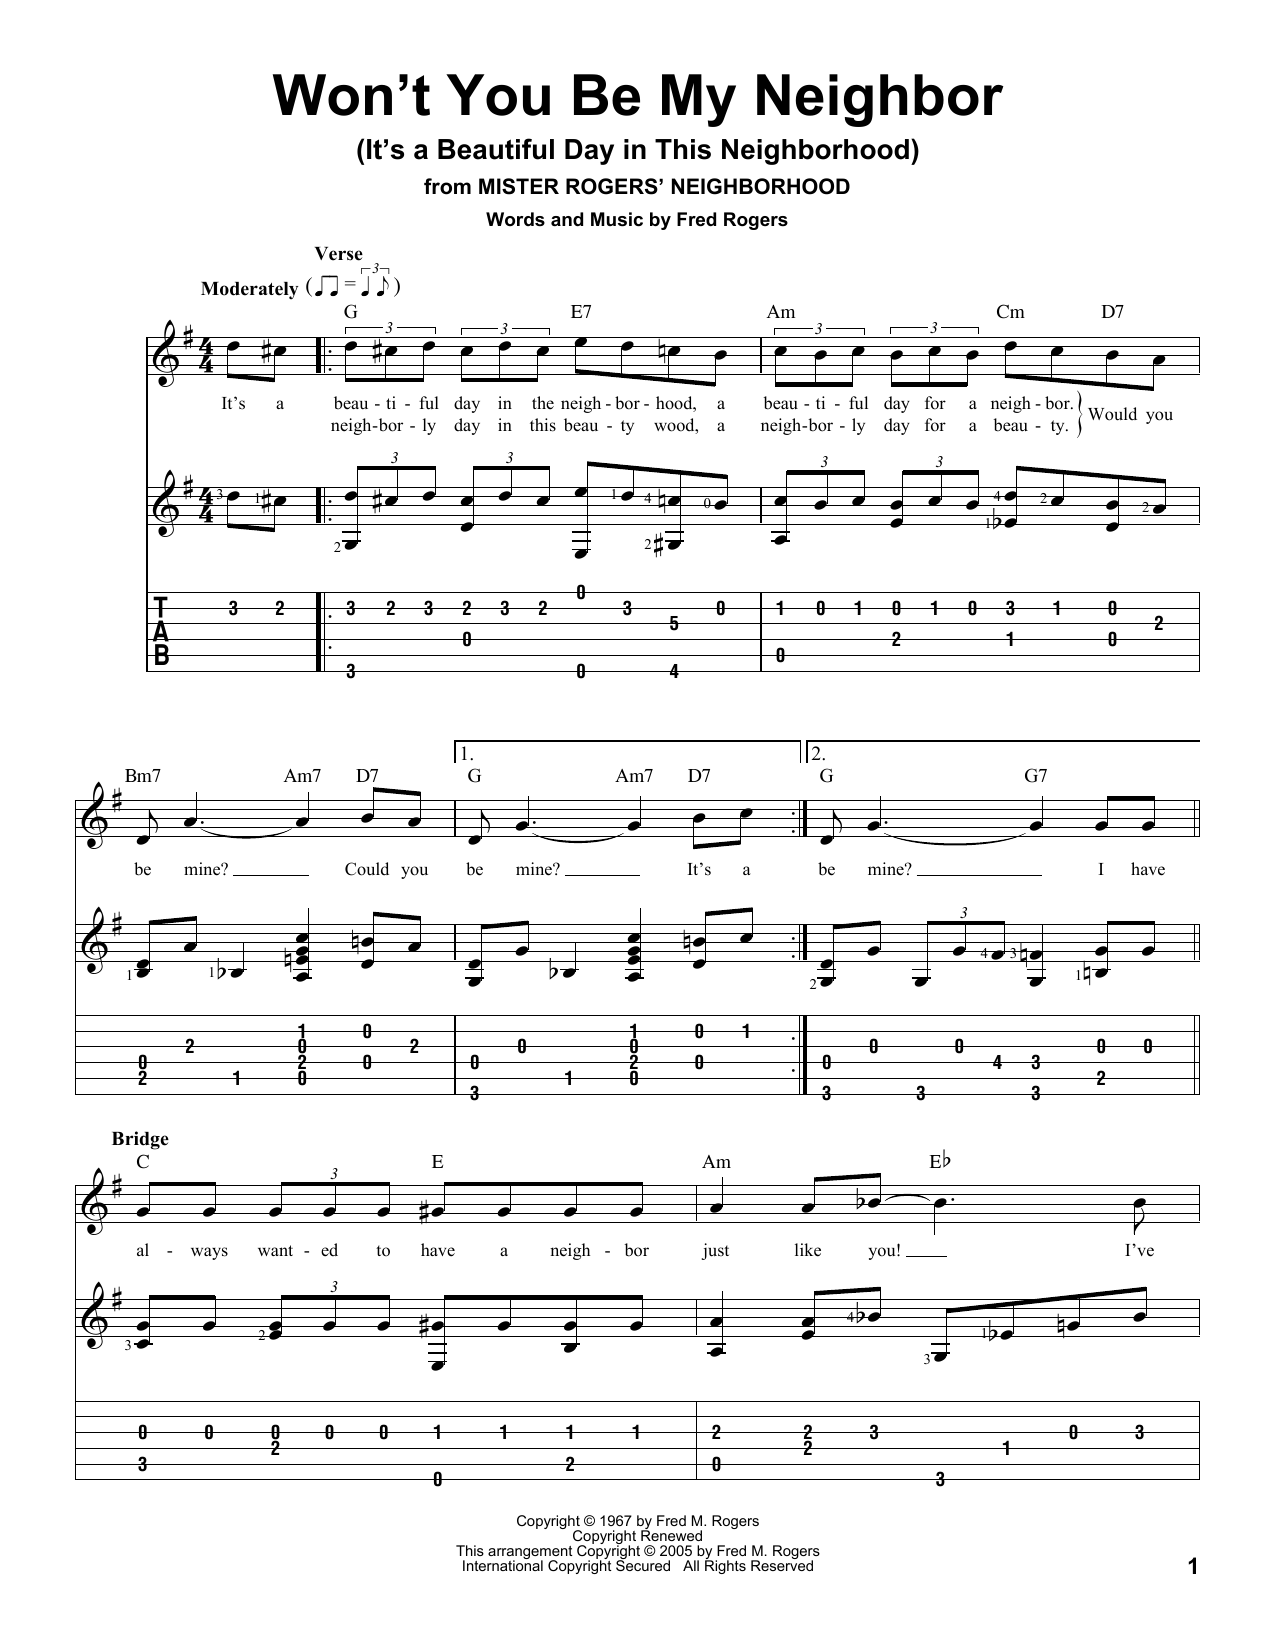 Won T You Be My Neighbor It S A Beautiful Day In The Neighborhood Sheet Music Notes Fred Rogers Chords Download Children Notes Melody Line Lyrics Chords Pdf Printable 188363